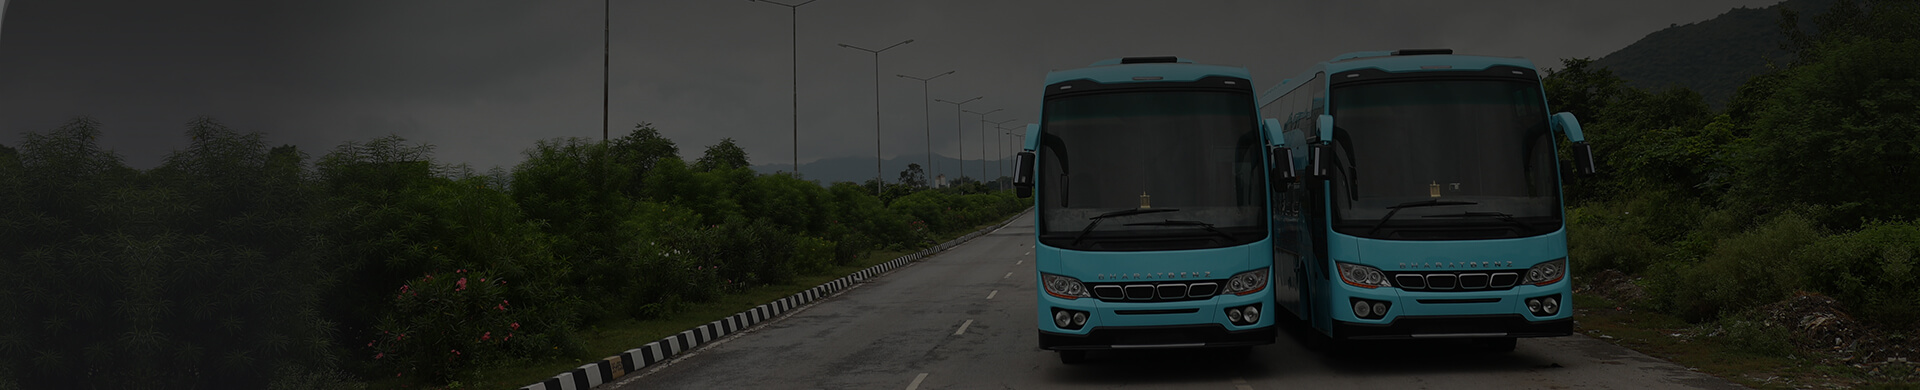 udaipur to ahmedabad bus